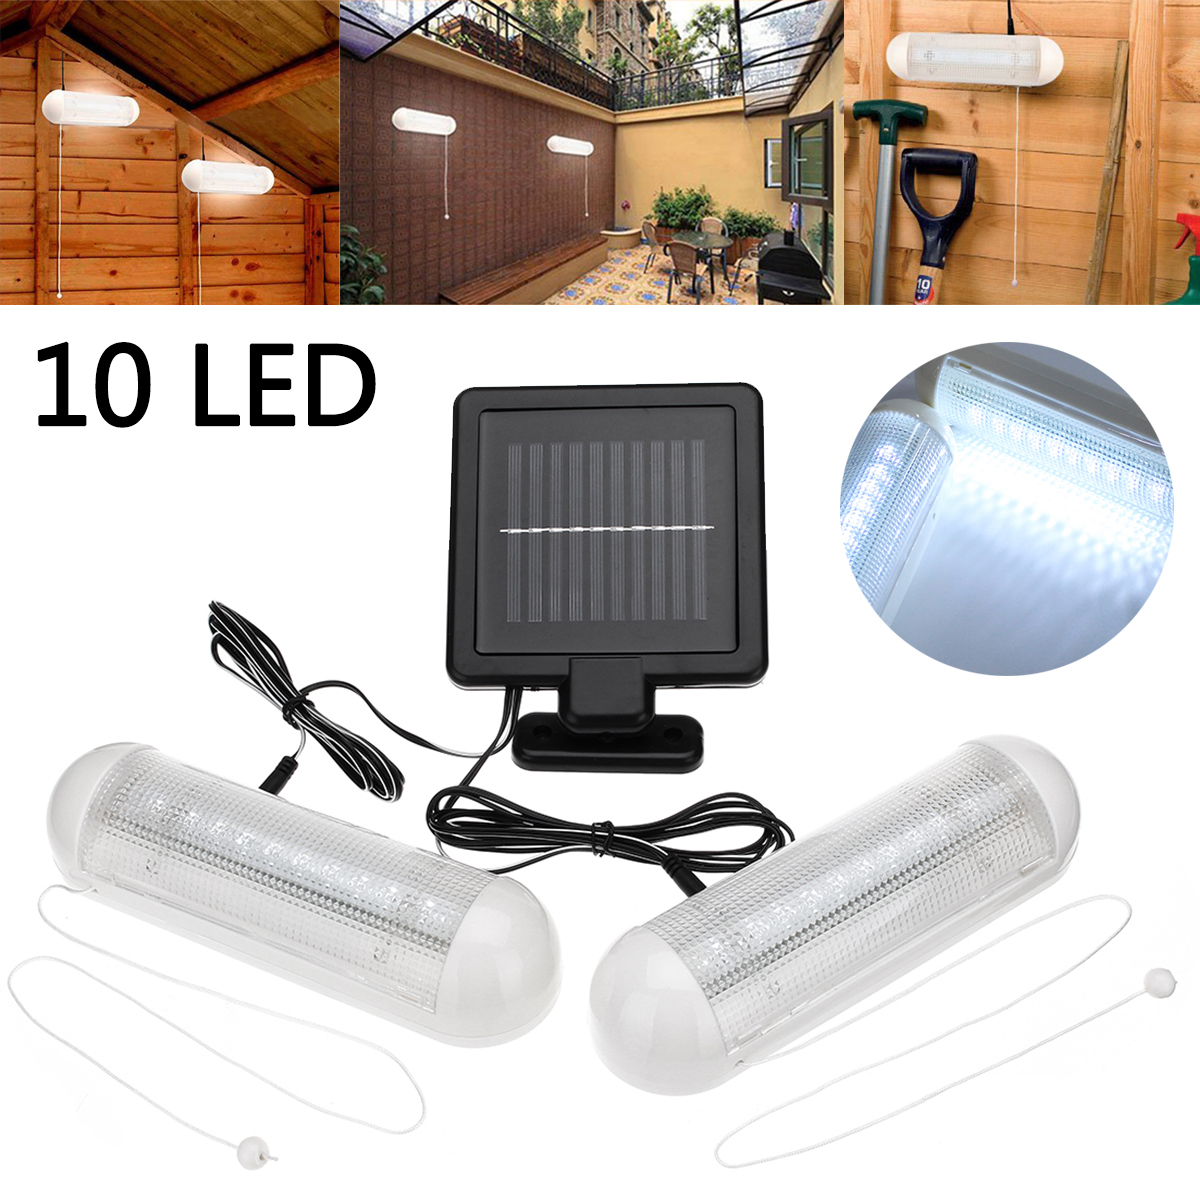 Waterproof 10 LED Solar Shed Light Garden Street Lights Yard Wall-mounted Lamp 1 Panel + 2 Lights LED Wall Lamp LightWaterproof 10 LED Solar Shed Light Garden Street Lights Yard Wall-mounted Lamp 1 Panel + 2 Lights LED Wall Lamp Light